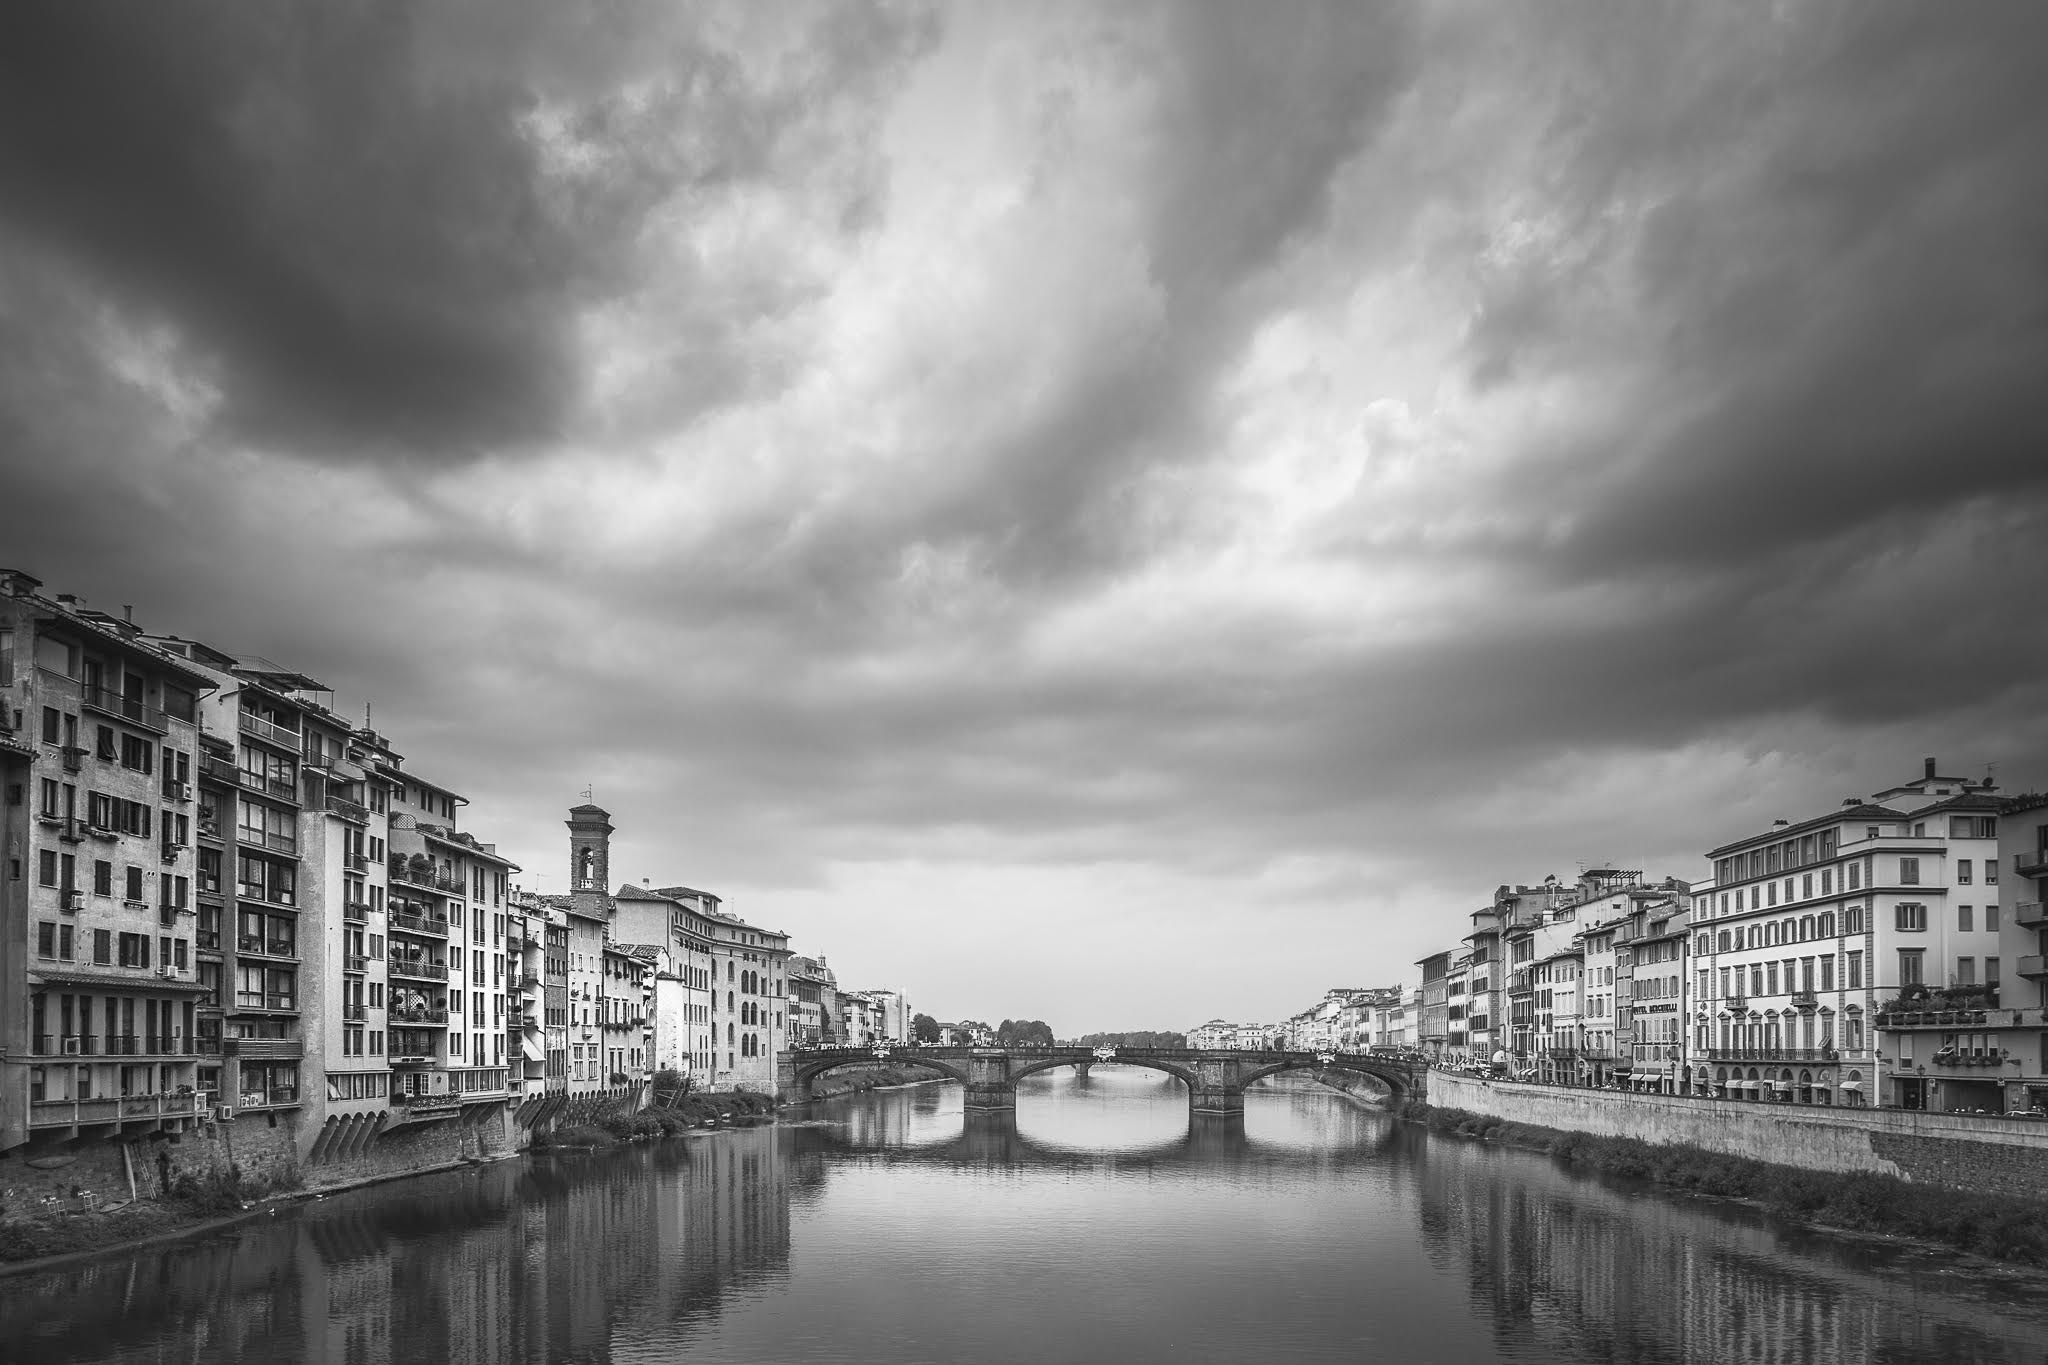 Storm clouds over the River Arno by Robert Gough